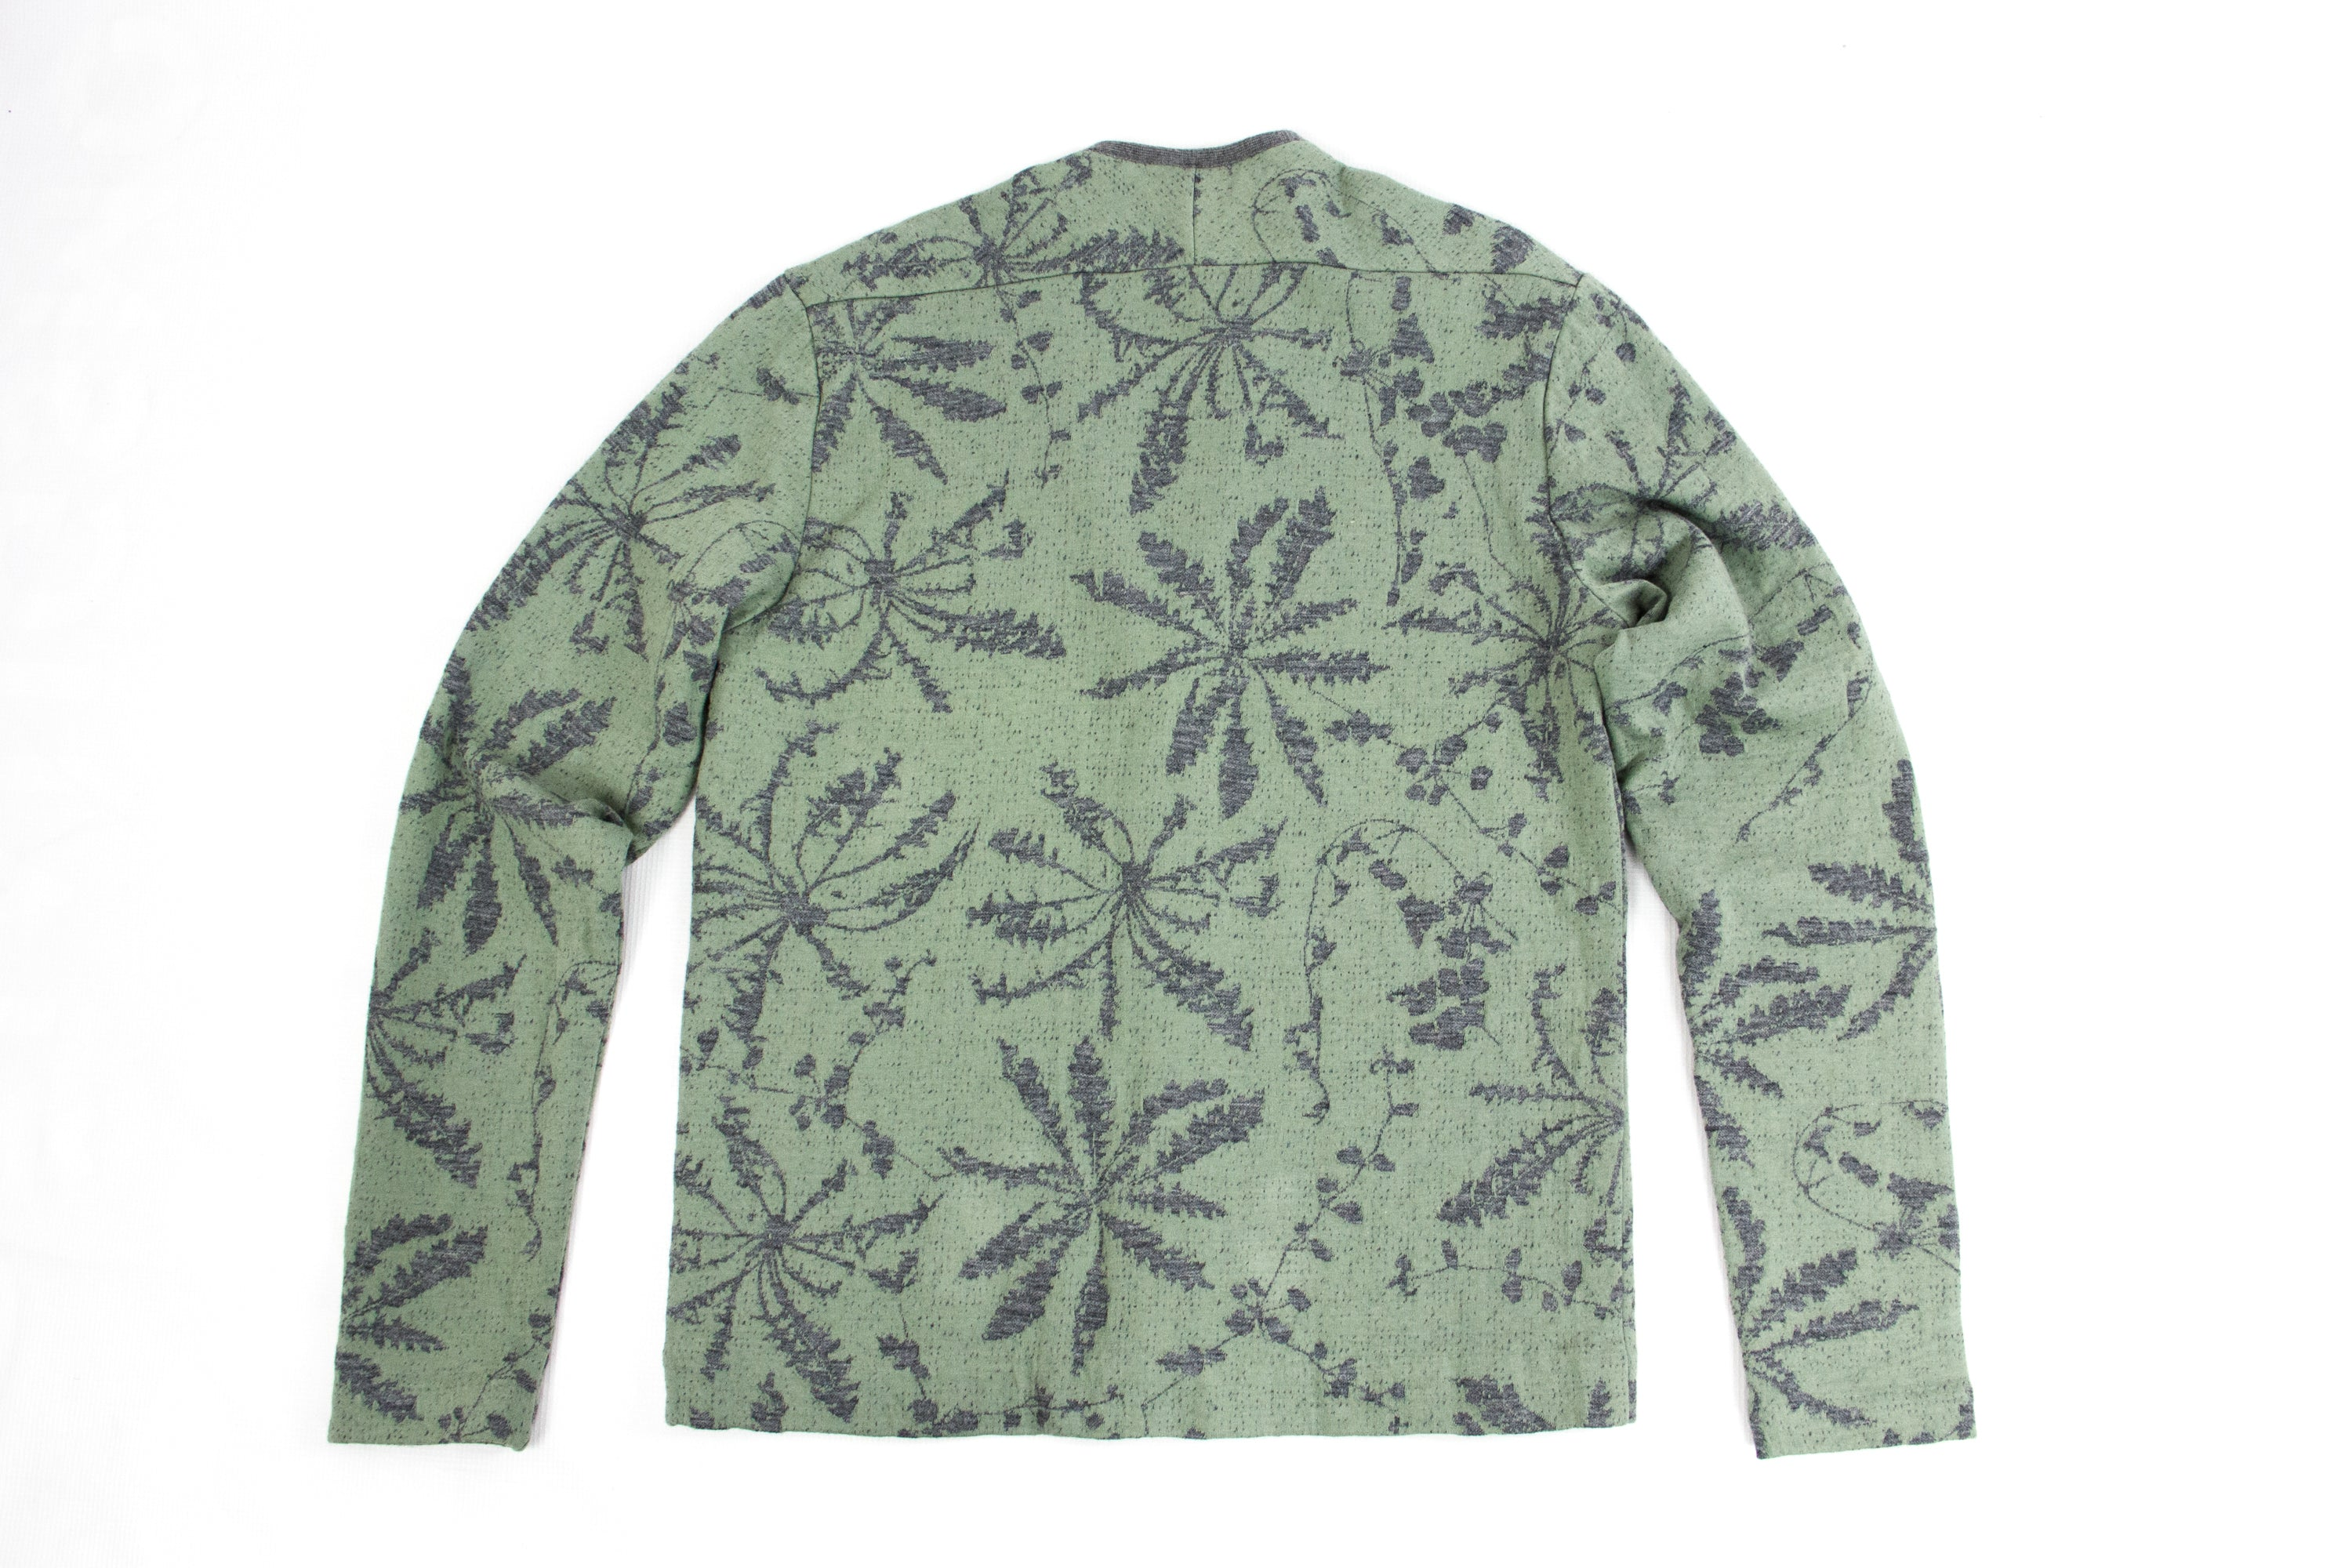 STEPHAN SCHNEIDER Wool-Cotton Blend Floral Print Green Cardigan SIZE L - secondfirst